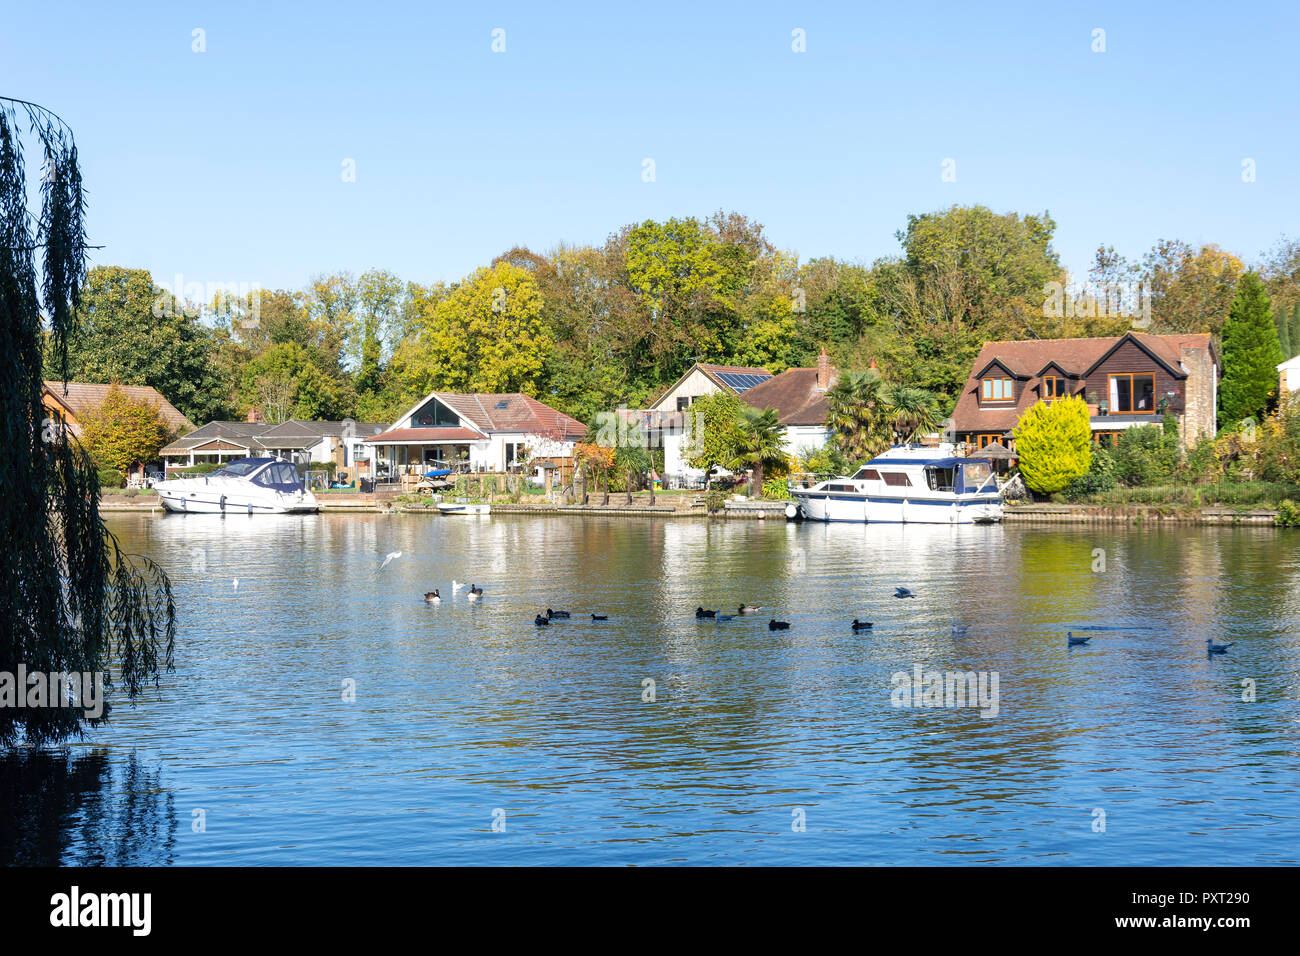 Riverside houses on bank of River Thames, Runnymede, Surrey, England, United Kingdom Stock Photo